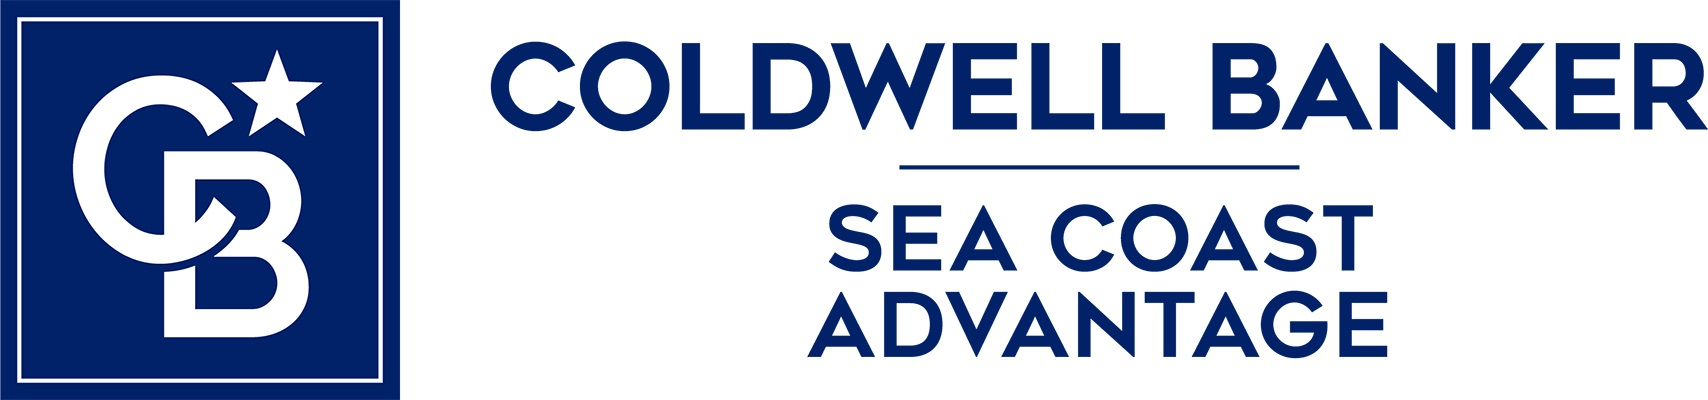 Amanda Cofer - Coldwell Banker Sea Coast Advantage Realty